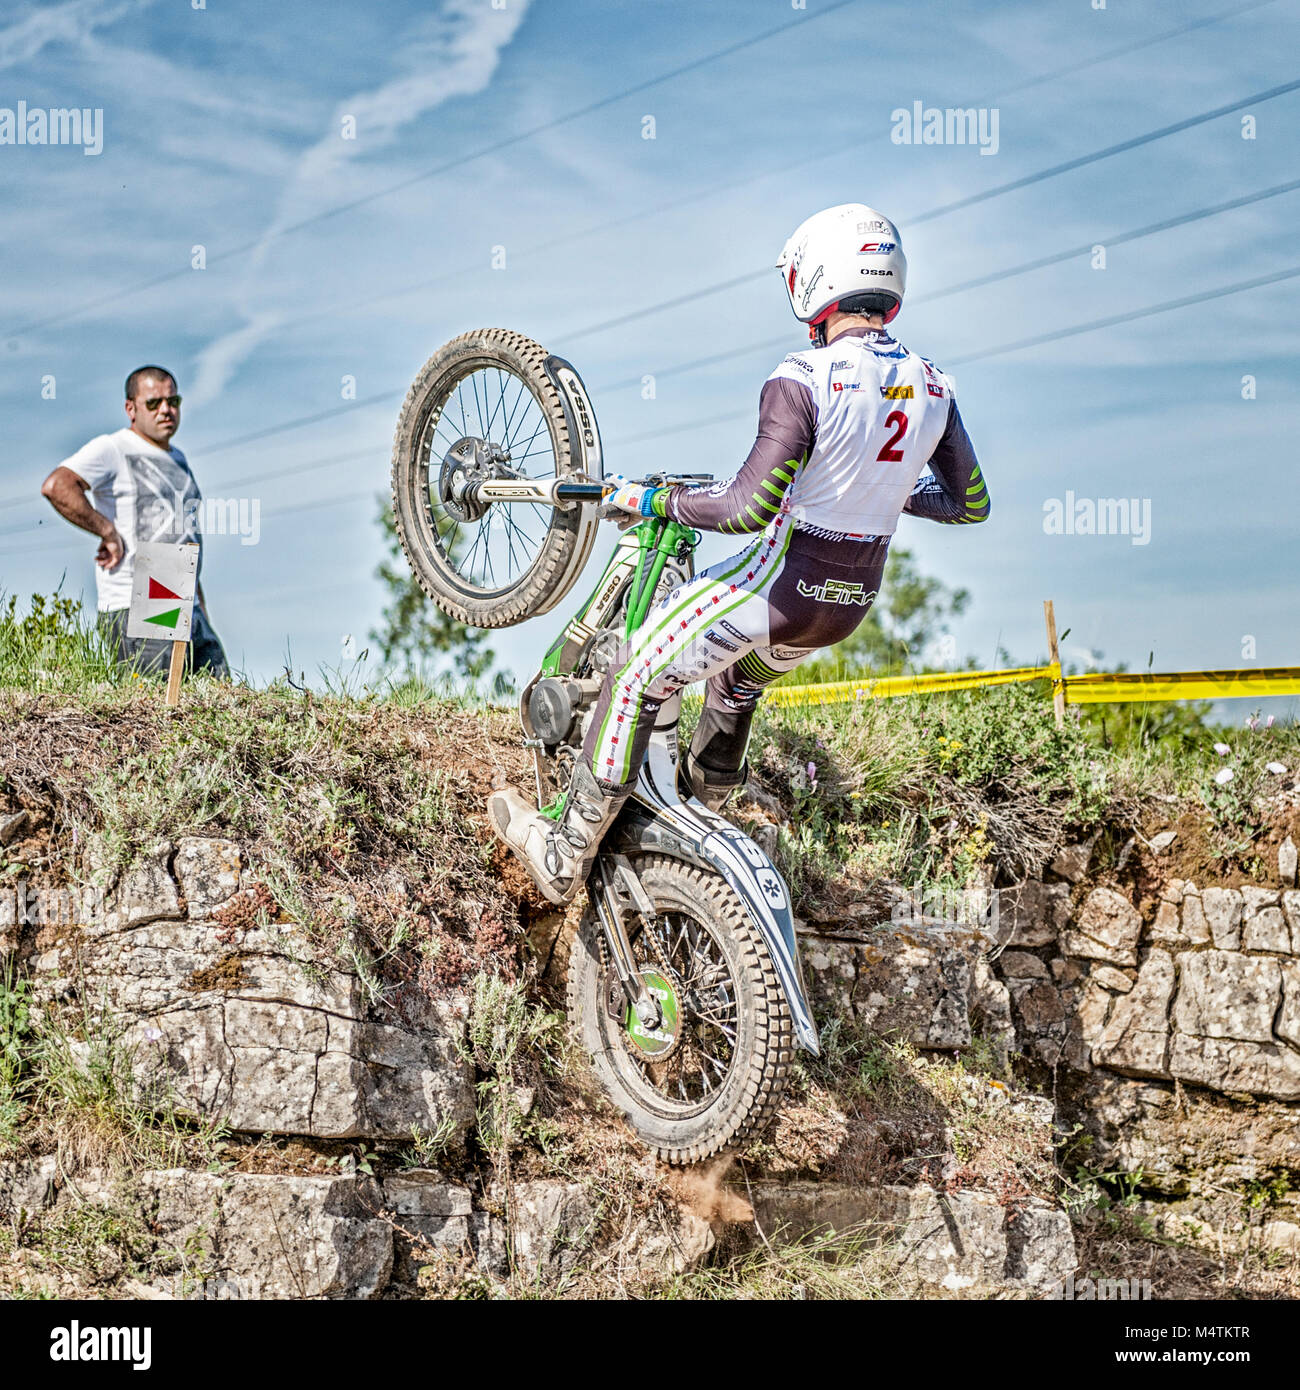 Trials motorbike rider tackles a difficult obstacle during the Portugal National Championships in Torres Vedras, - Stock Image